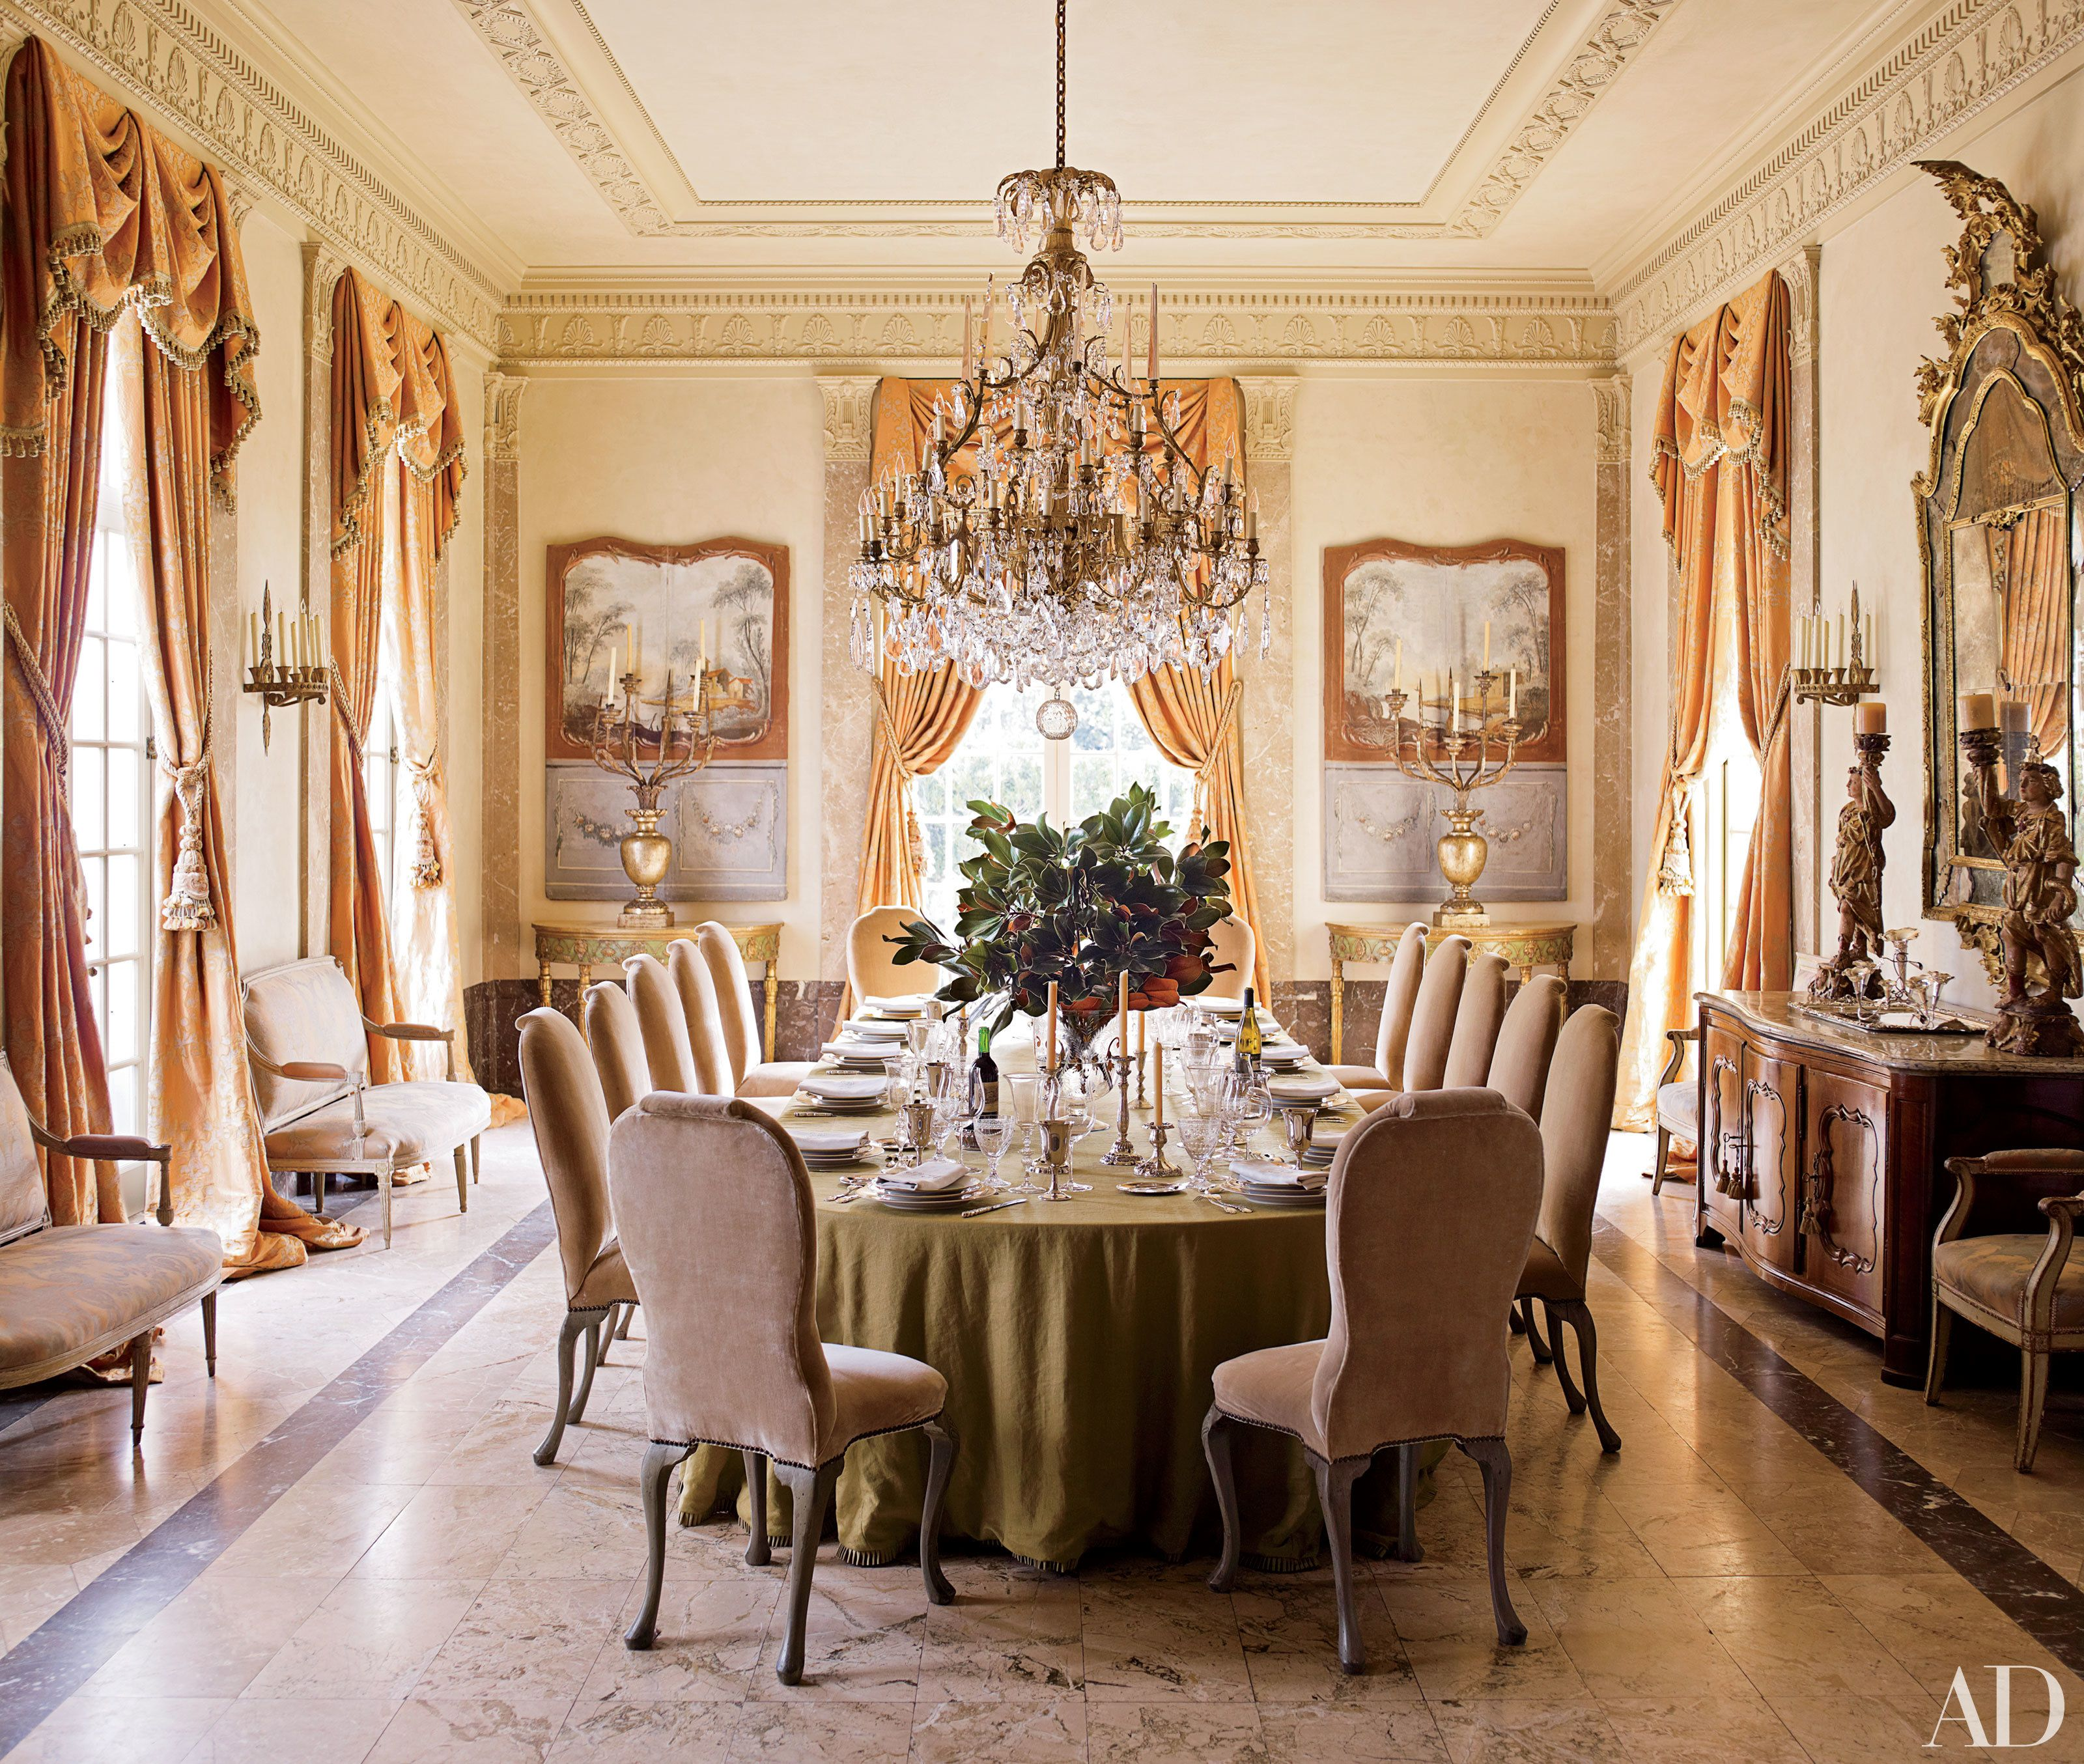 Dining Room With Chandelier Extraordinary How To Decorate With Crystal Chandeliers  Architectural Digest Decorating Design